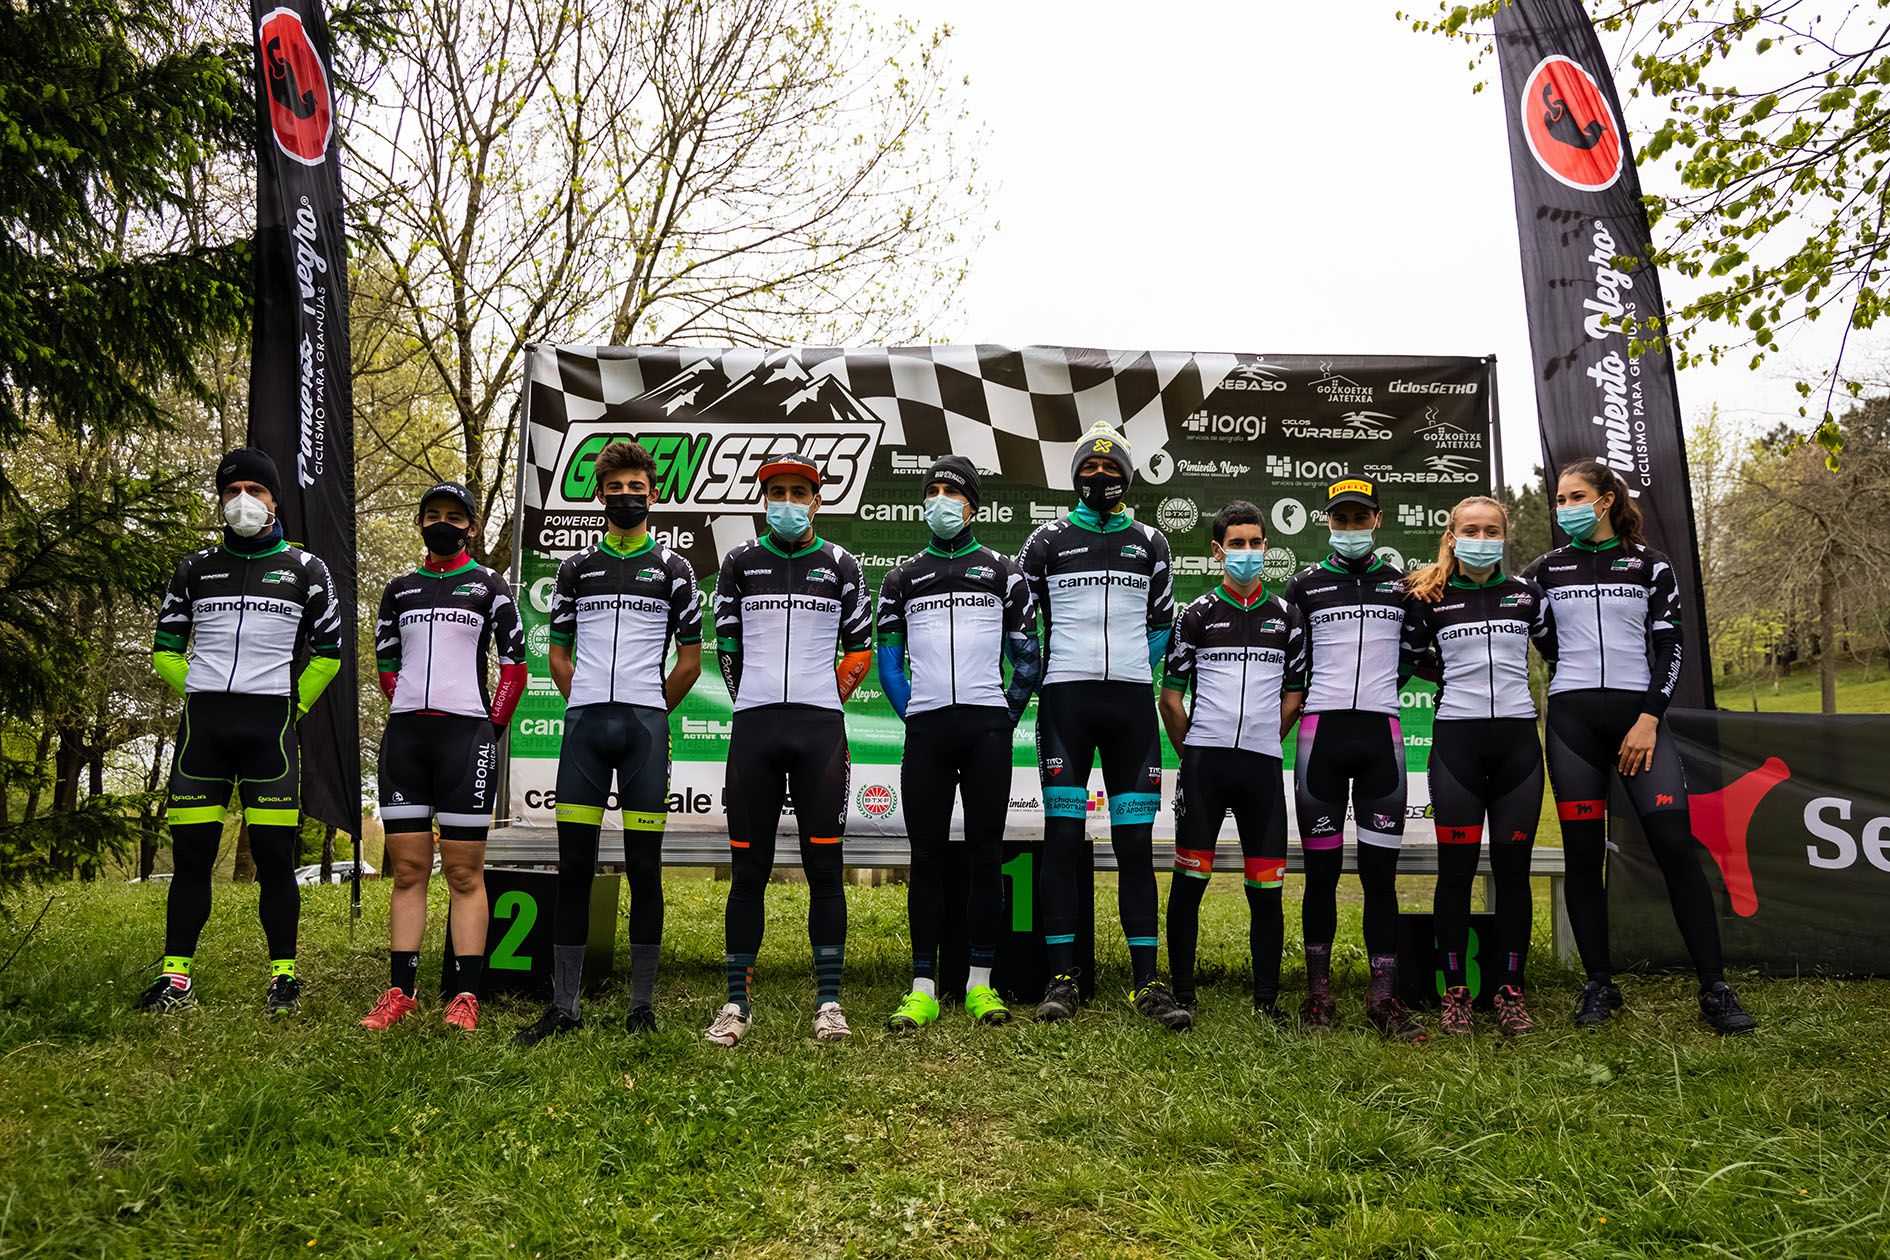 Green Series XCO powered by Cannondale 2 Bilbao Lideresjpg